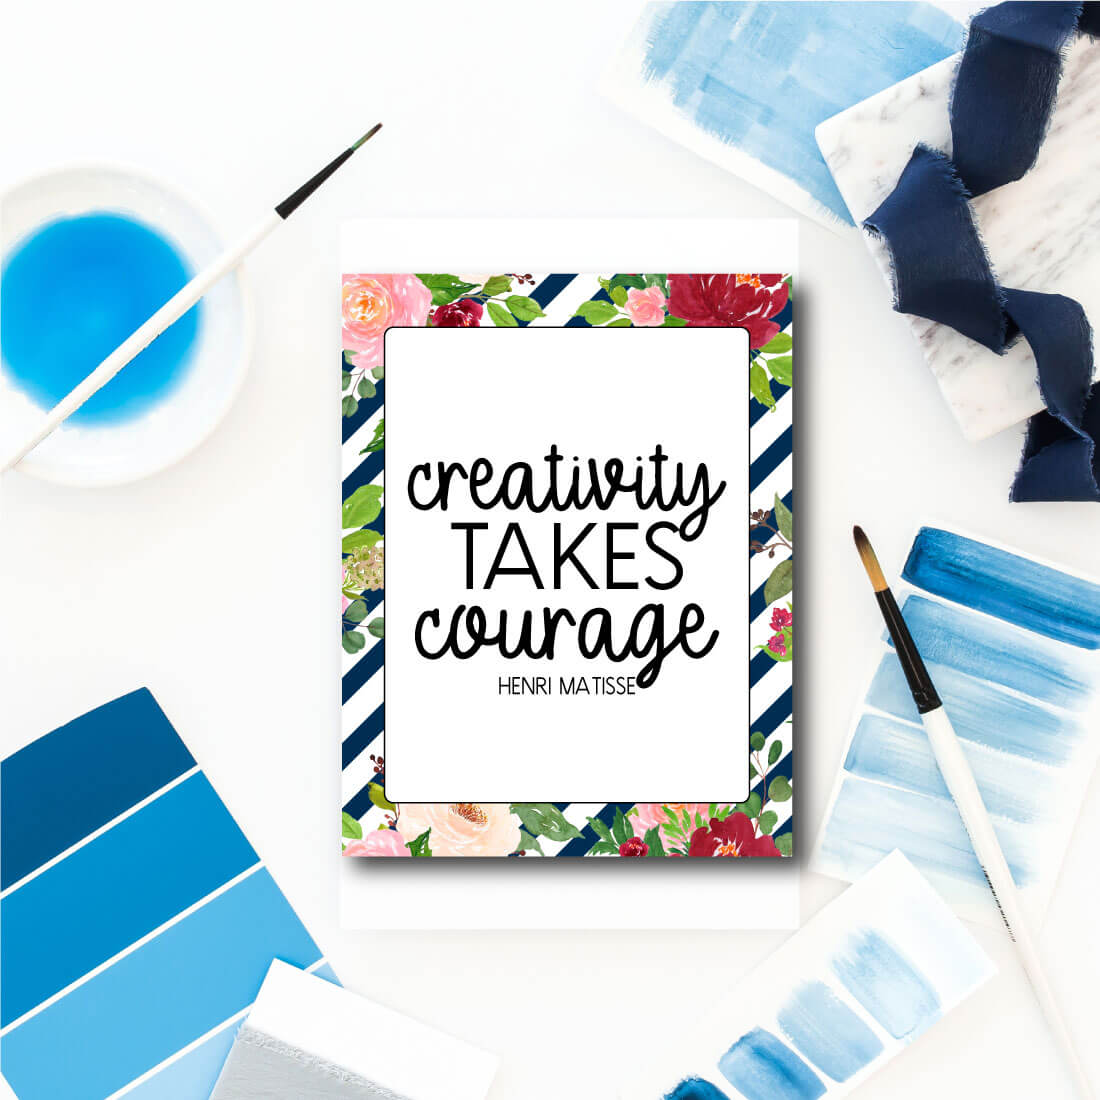 Creativity takes courage - short inspirational quote to print out